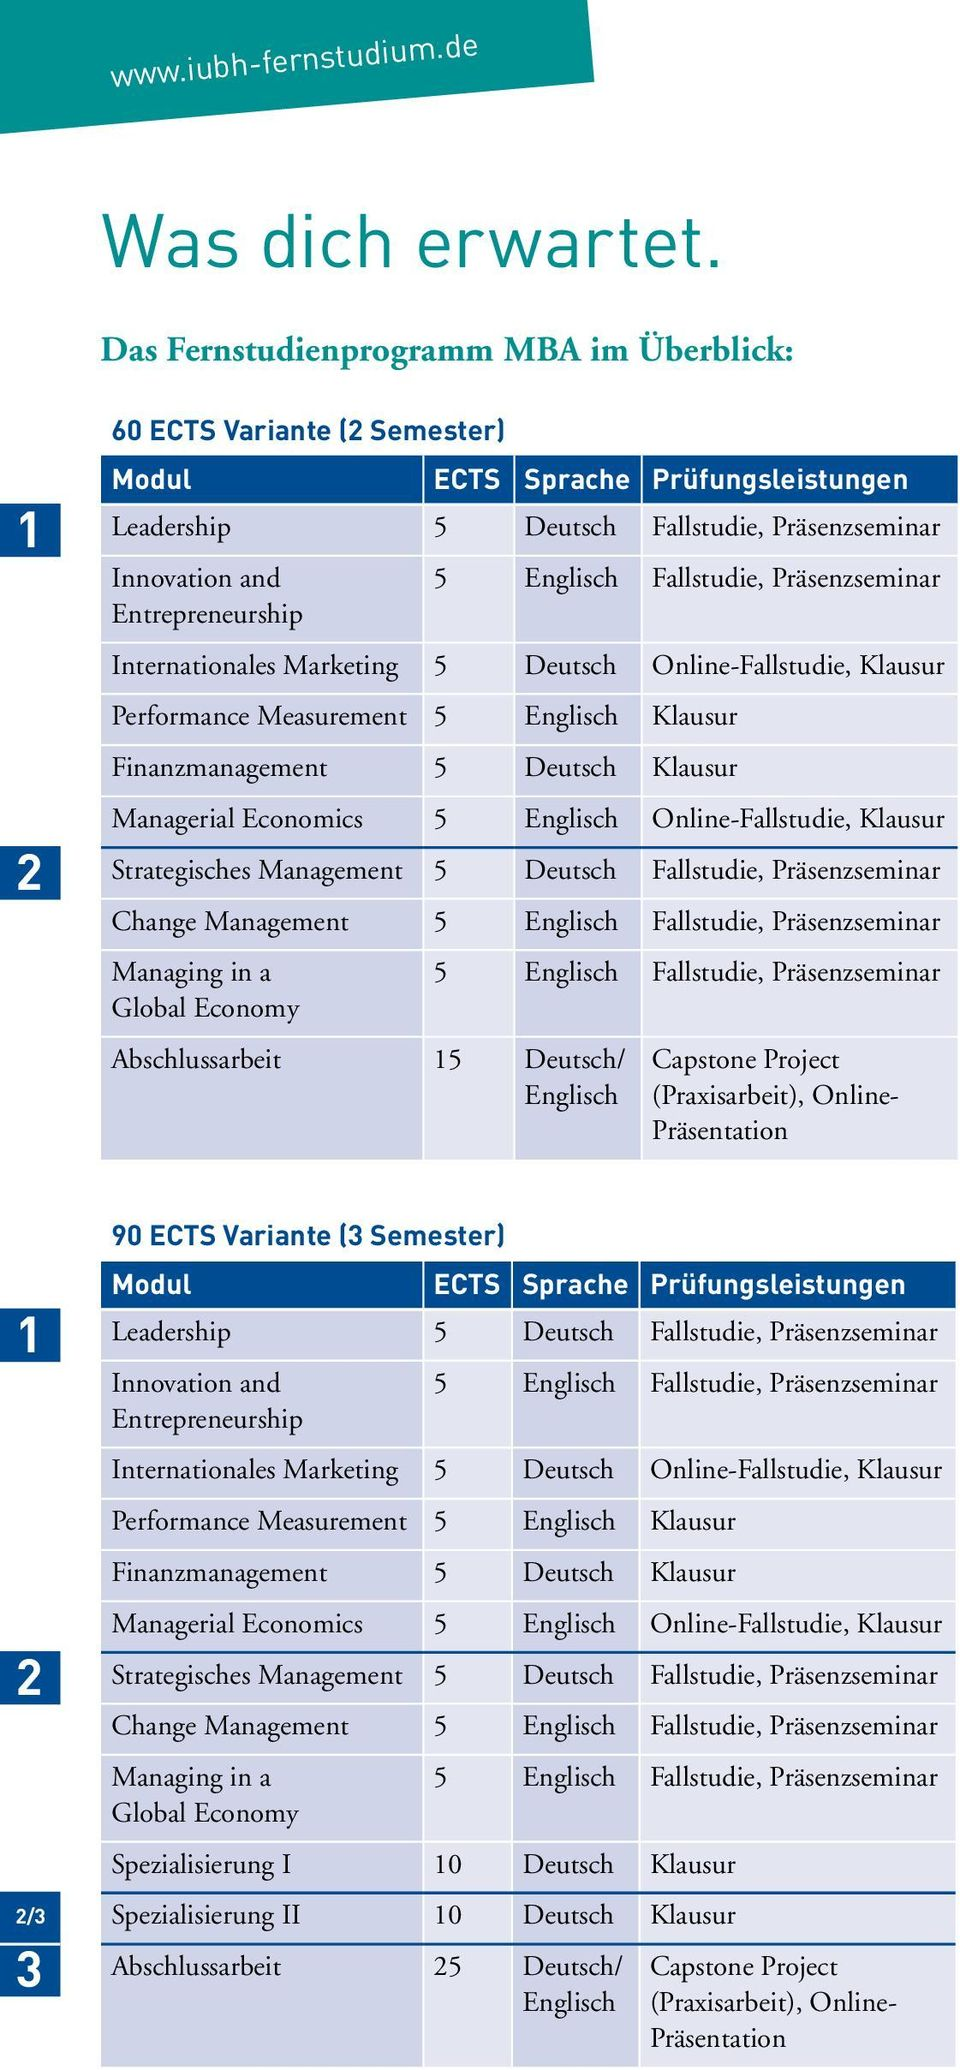 Englisch Fallstudie, Präsenzseminar Internationales Marketing 5 Deutsch Online-Fallstudie, Klausur Performance Measurement 5 Englisch Klausur Finanzmanagement 5 Deutsch Klausur Managerial Economics 5